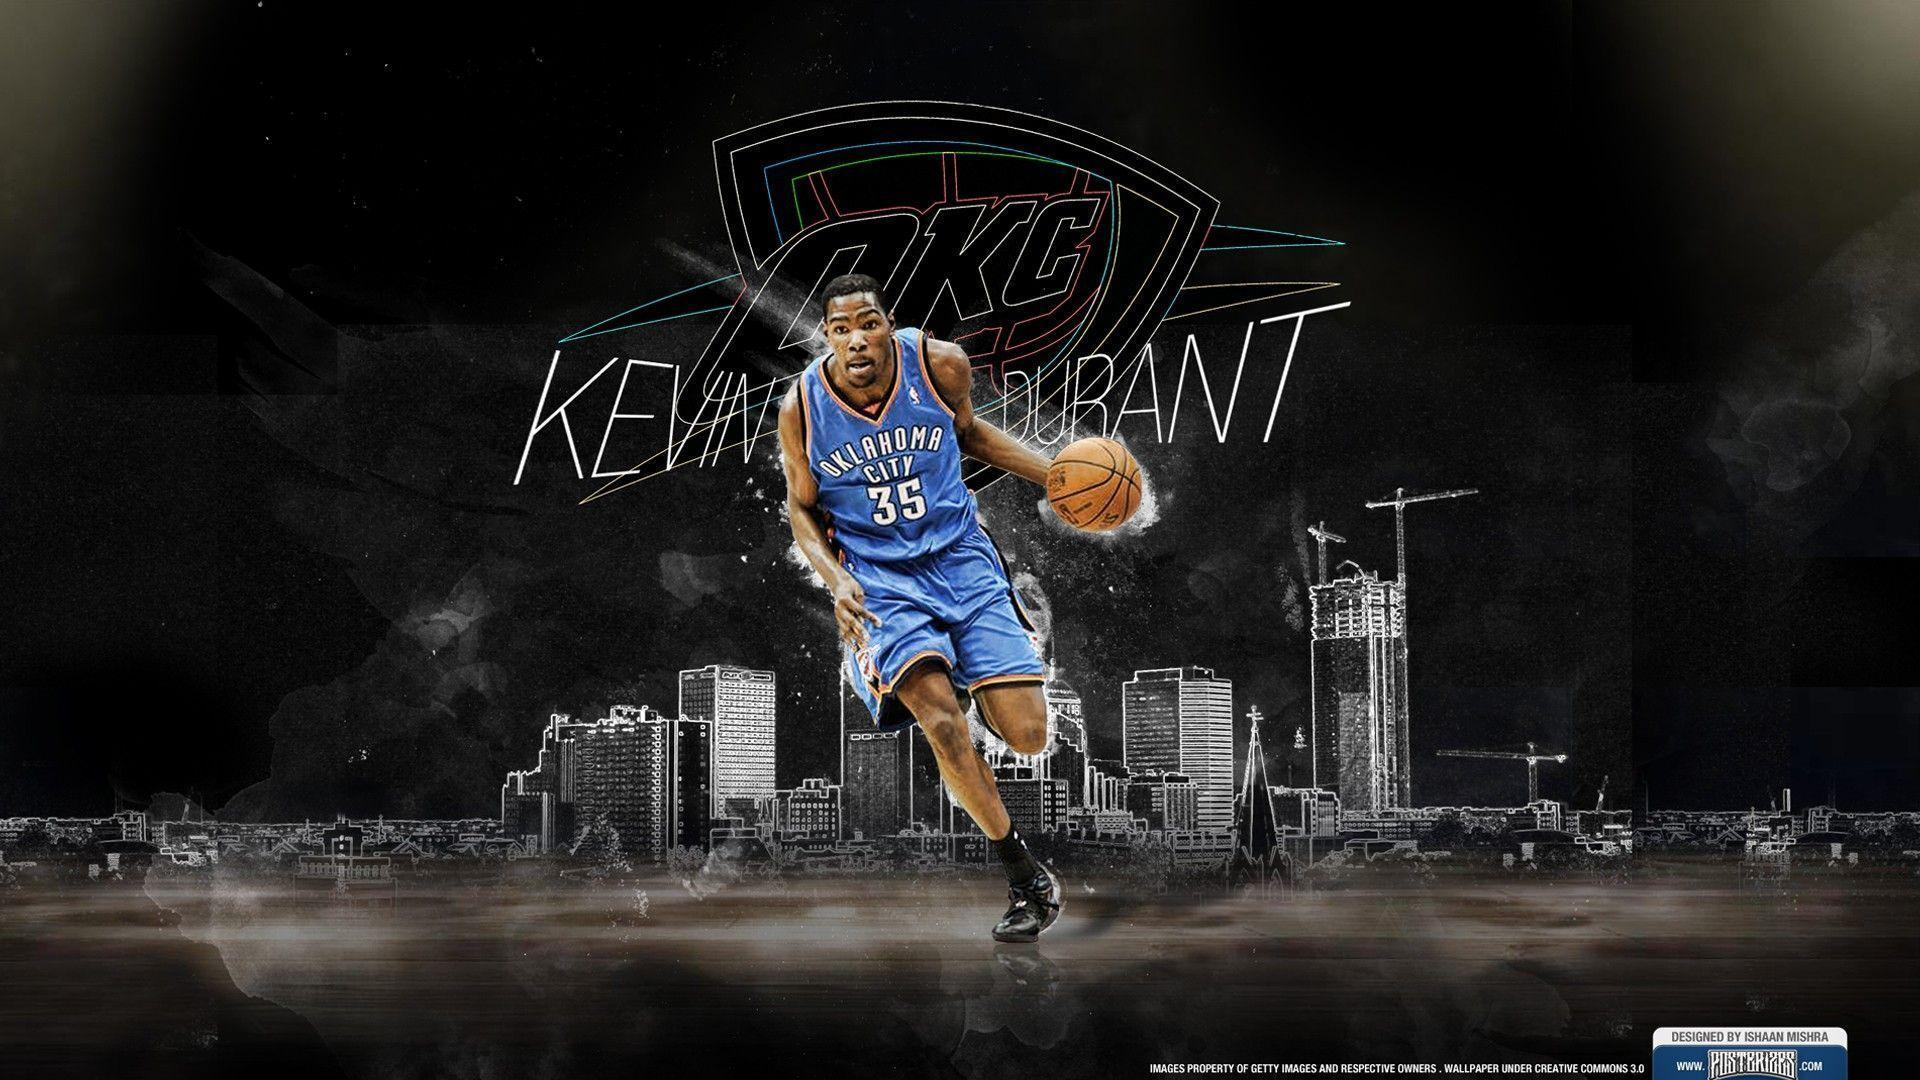 Kevin Love Iphone Wallpaper : Kevin Durant Wallpapers 2015 HD - Wallpaper cave